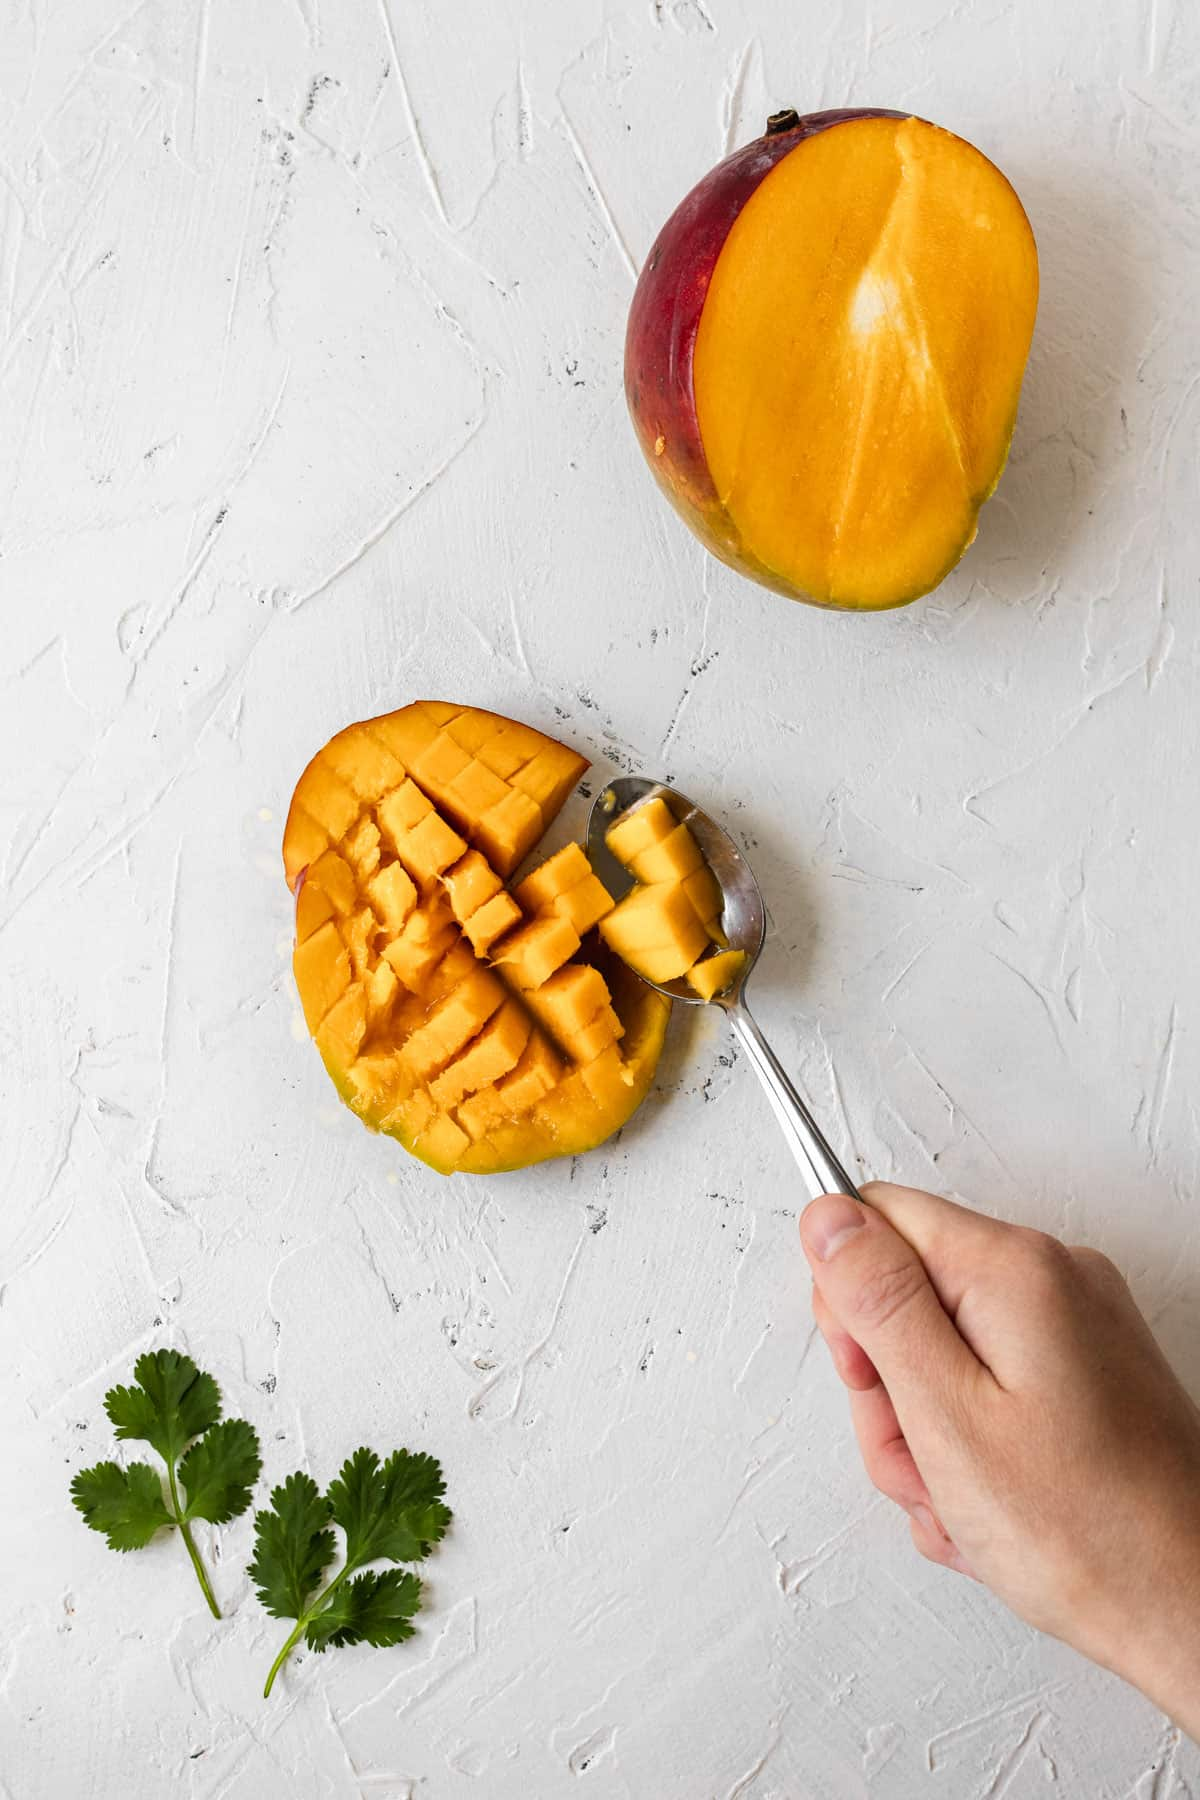 A spoon peeling the skin back and scooping out the cubed inside of mango.